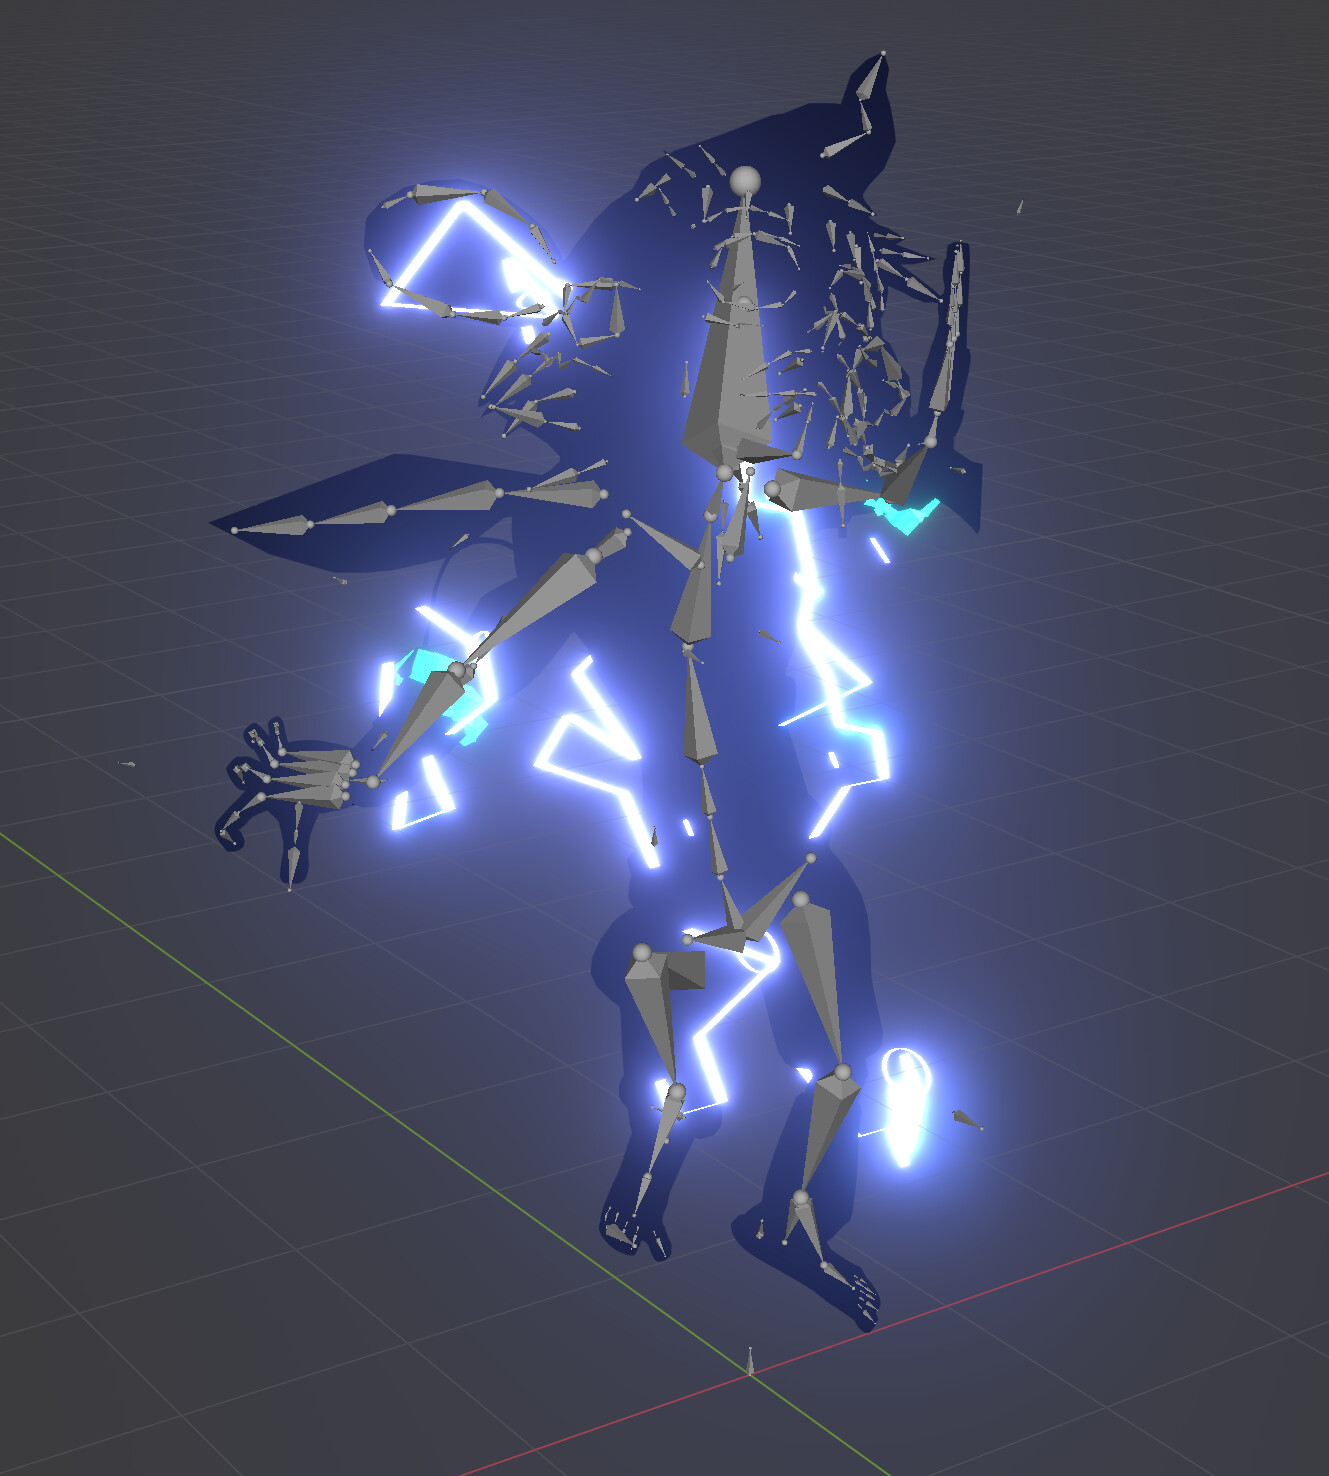 Had to screencap this because Blender never renders armatures... Basically, the idea is when a cyber being gets electrocuted, they show their 3D model rig instead of a traditional skeleton